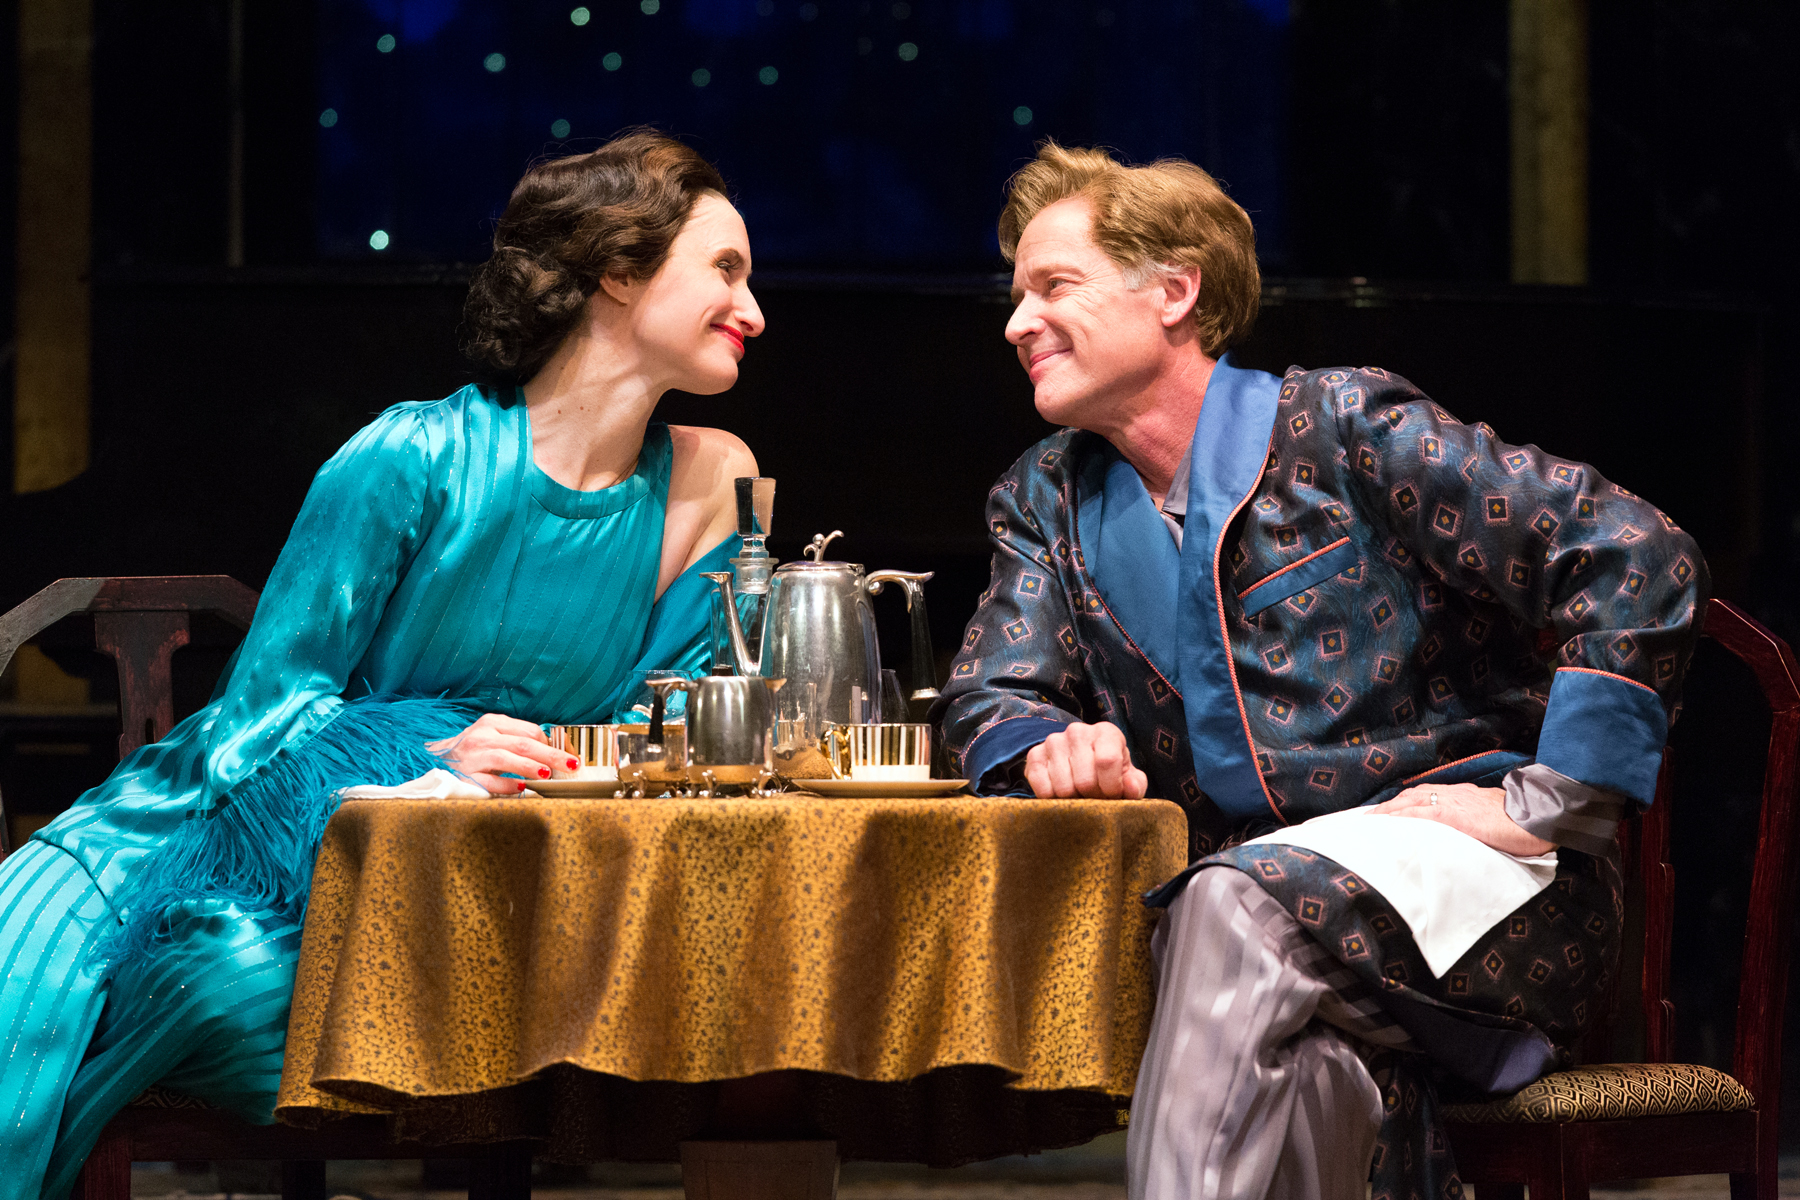 Kathleen Wallace and Greg Wood in Noël Coward's PRIVATE LIVES at Walnut Street Theatre. Photo by Mark Garvin.